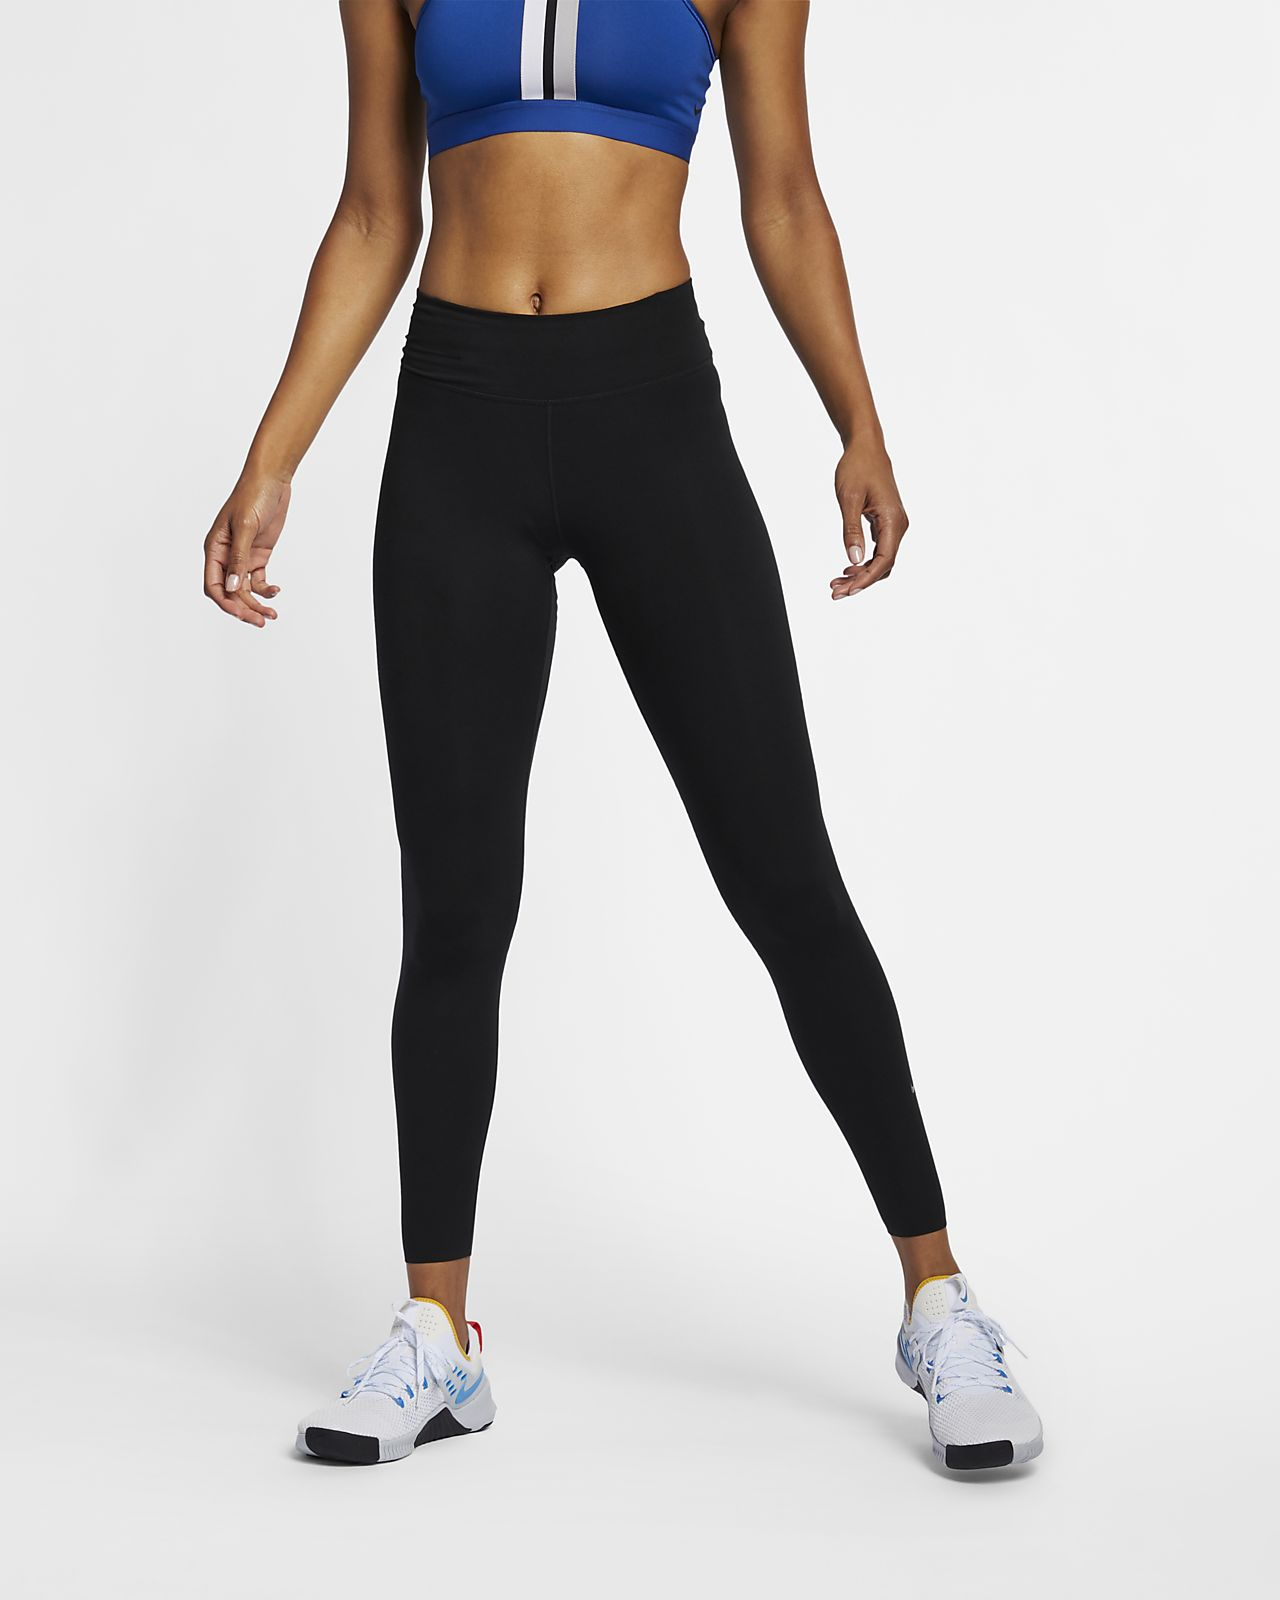 Nike One Luxe Malles - Dona